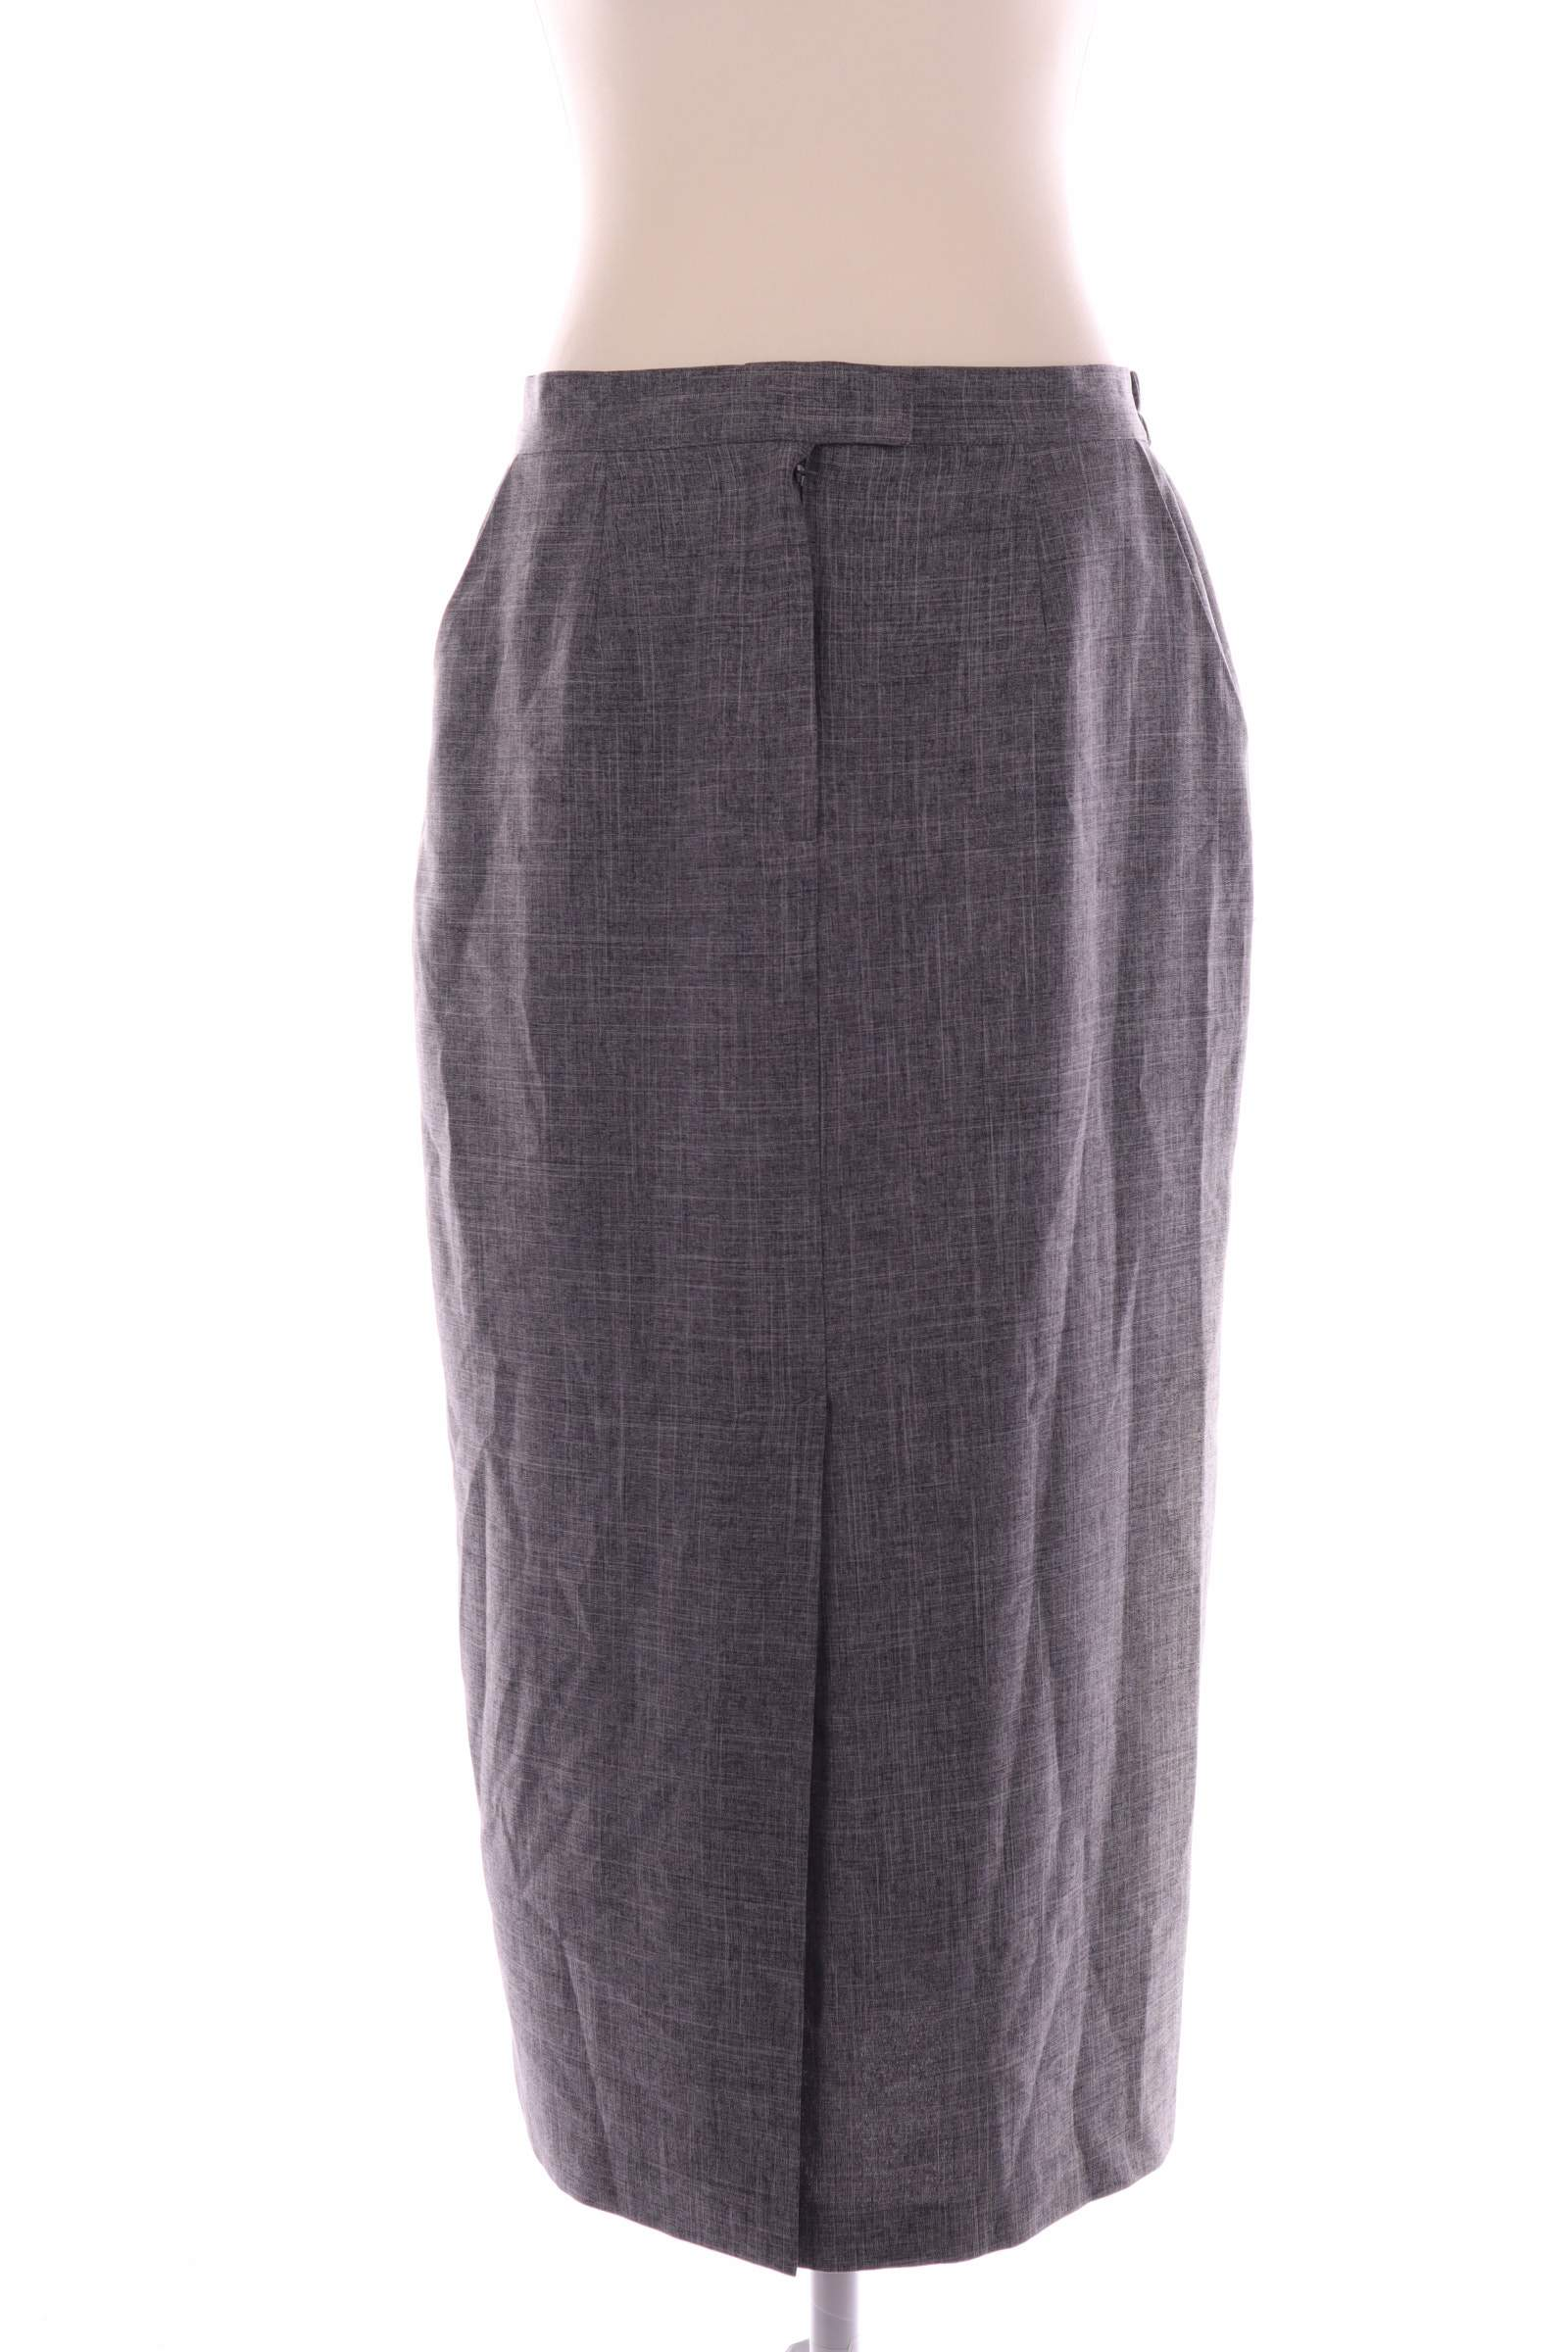 Fly Now Gray Skirt - upty.store